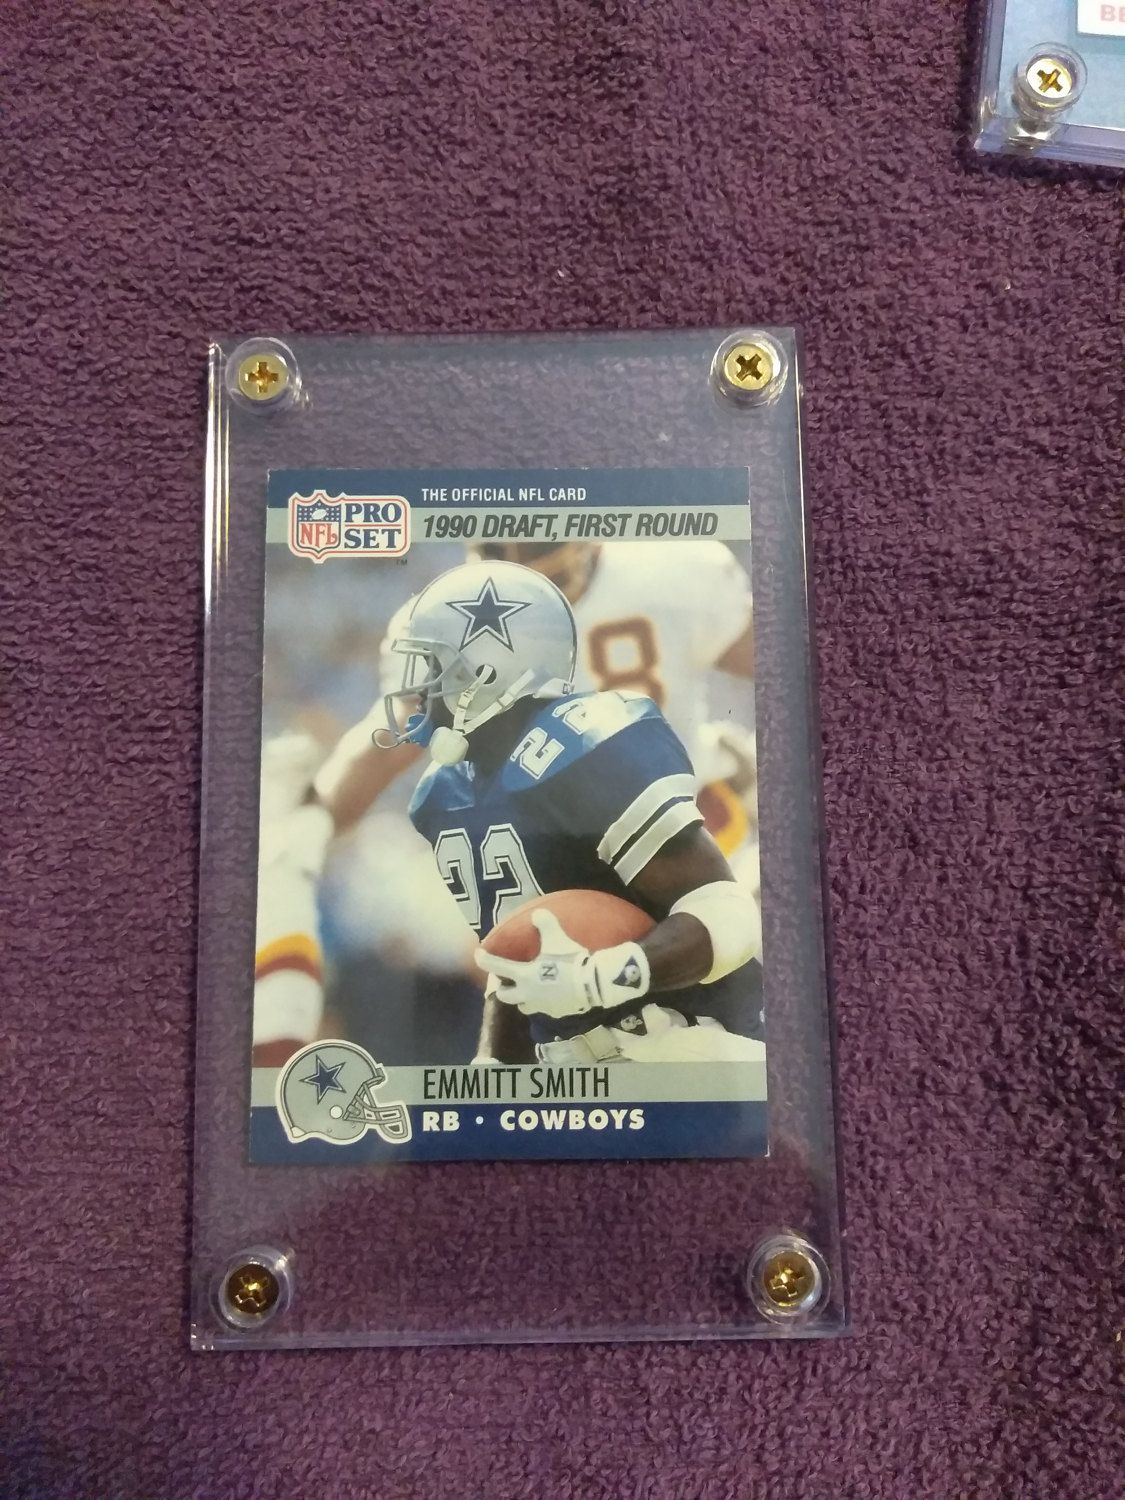 1990 pro set football card emmitt smith rookie by